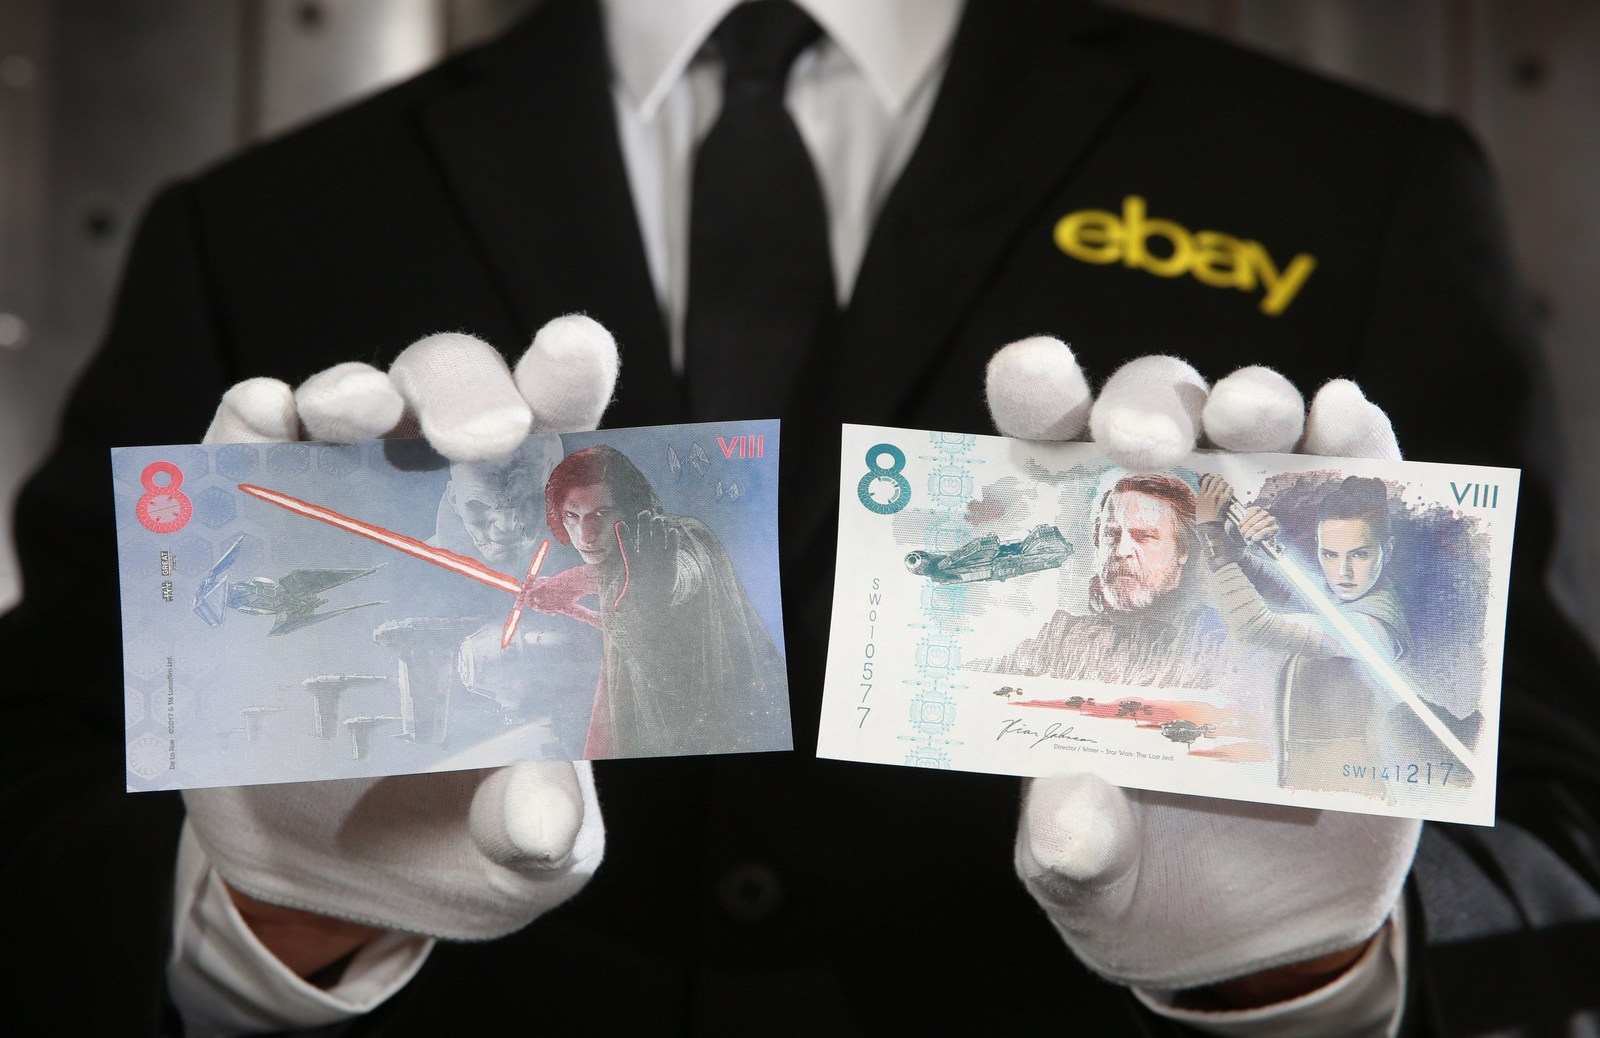 eBay and De La Rue launch an official commemorative note for charity on December 7th, to mark the upcoming film release of Star Wars: The Last Jedi